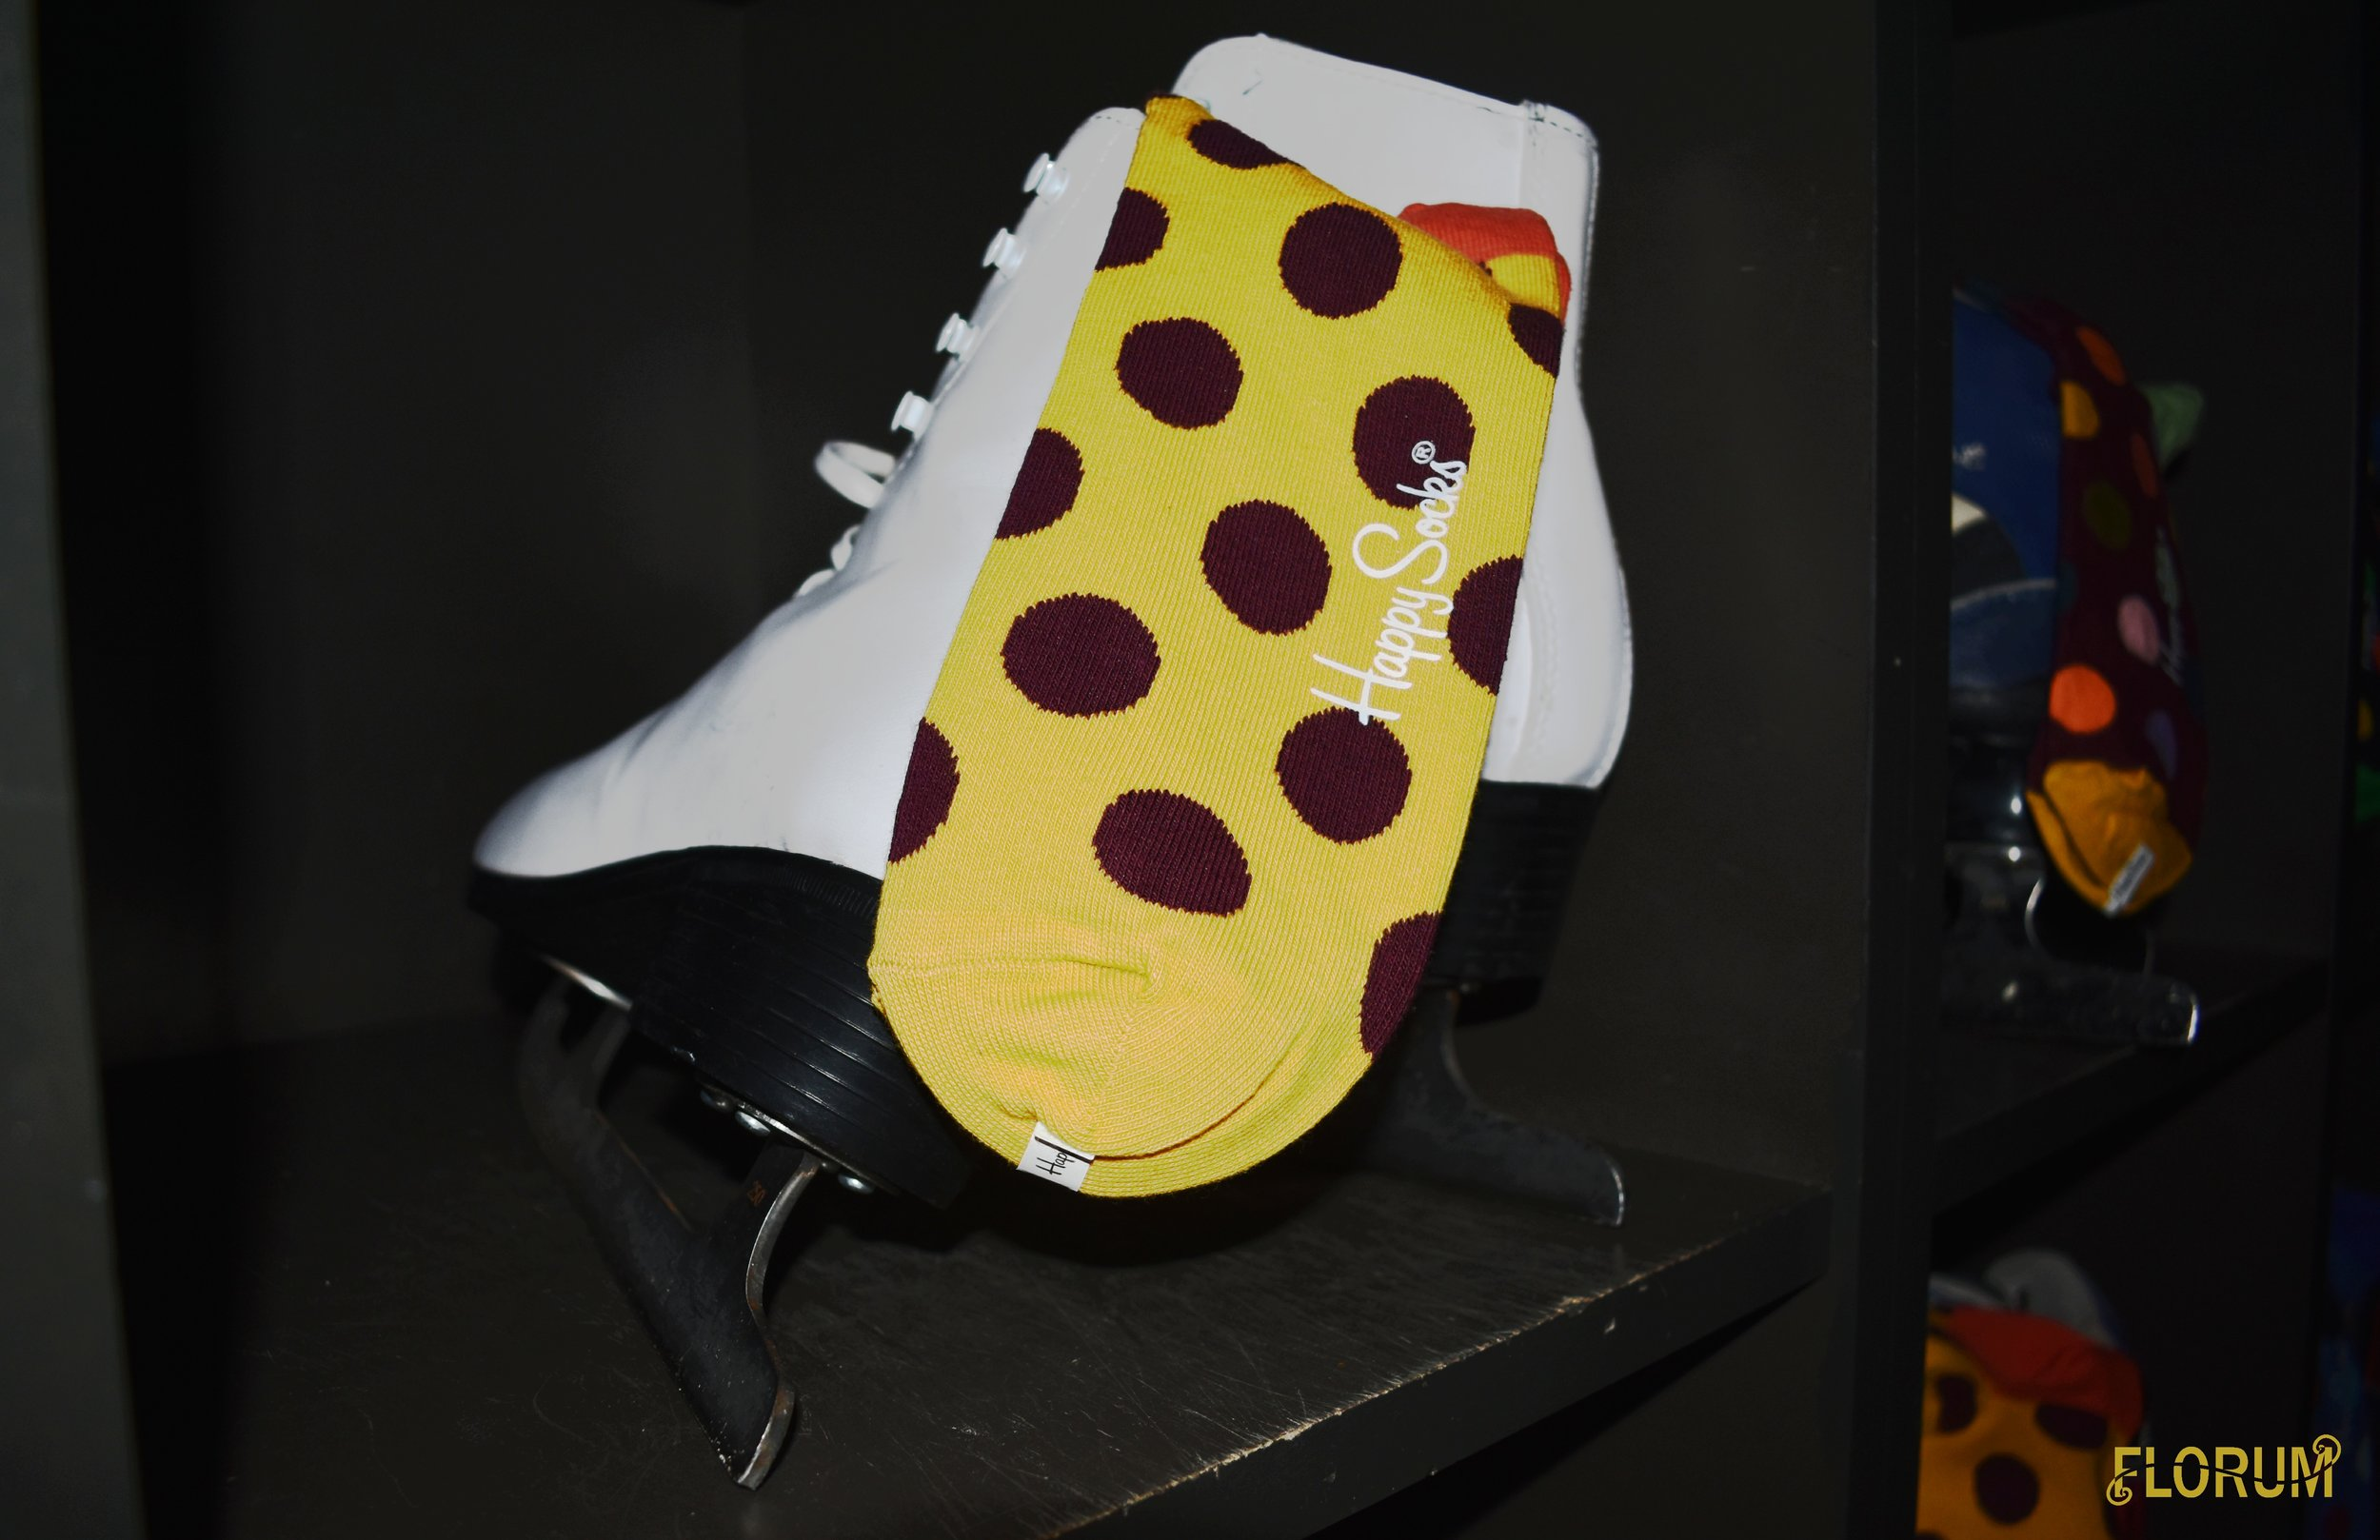 Such a fun  party favor was the Happy Socks  that were offered for both the ice skates and bowling shoes.